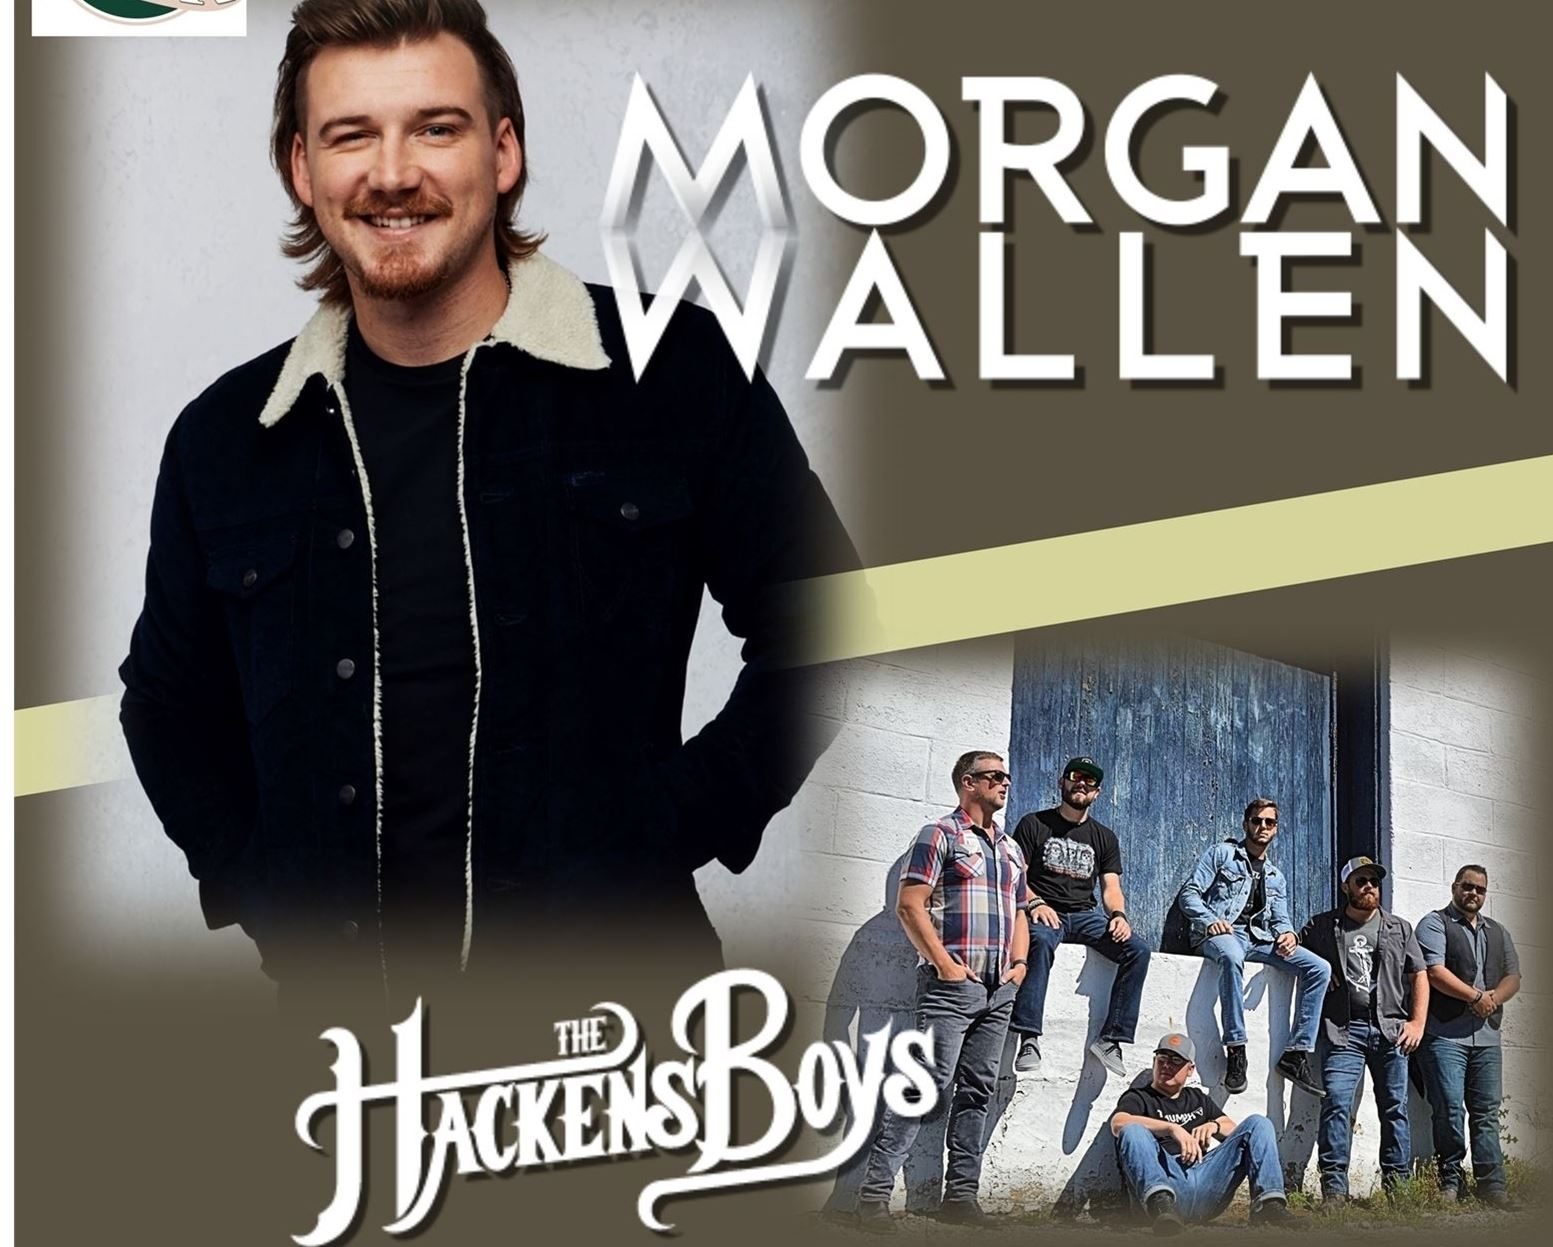 Morgan Wallen with Hackens Boys